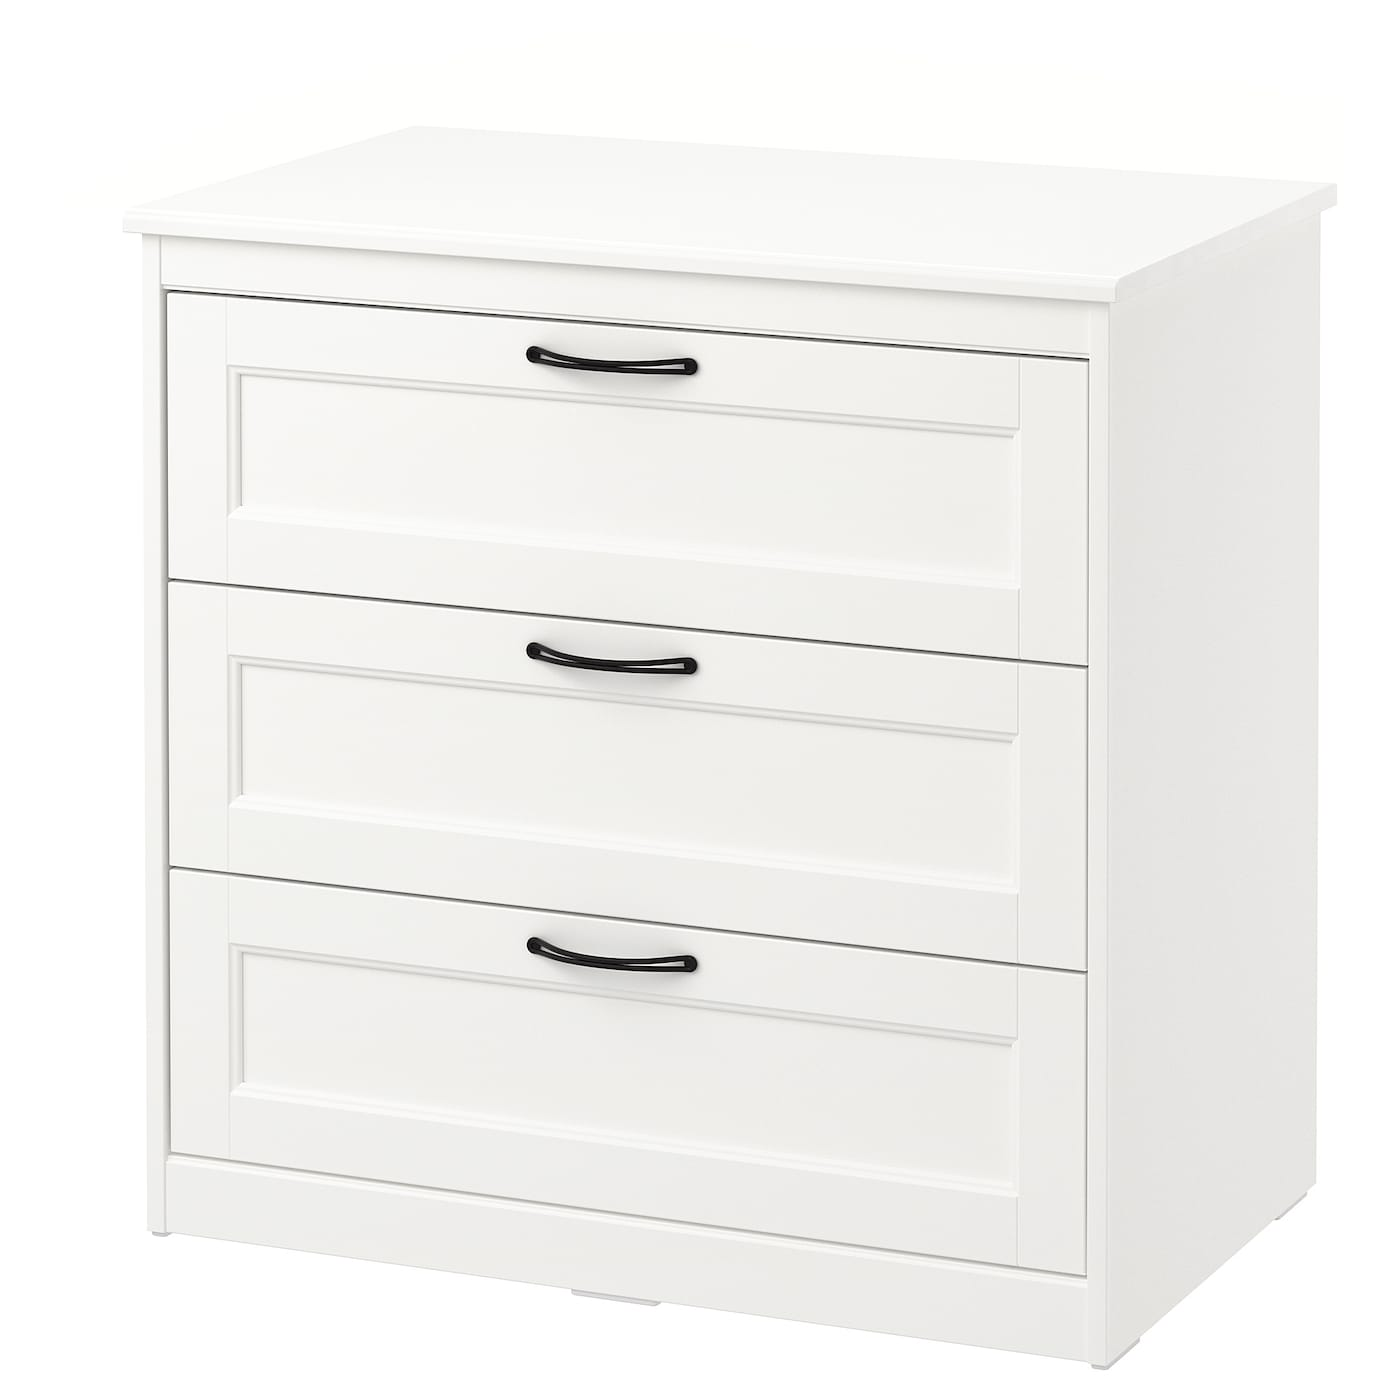 Songesand 3 Drawer Chest White 32 1